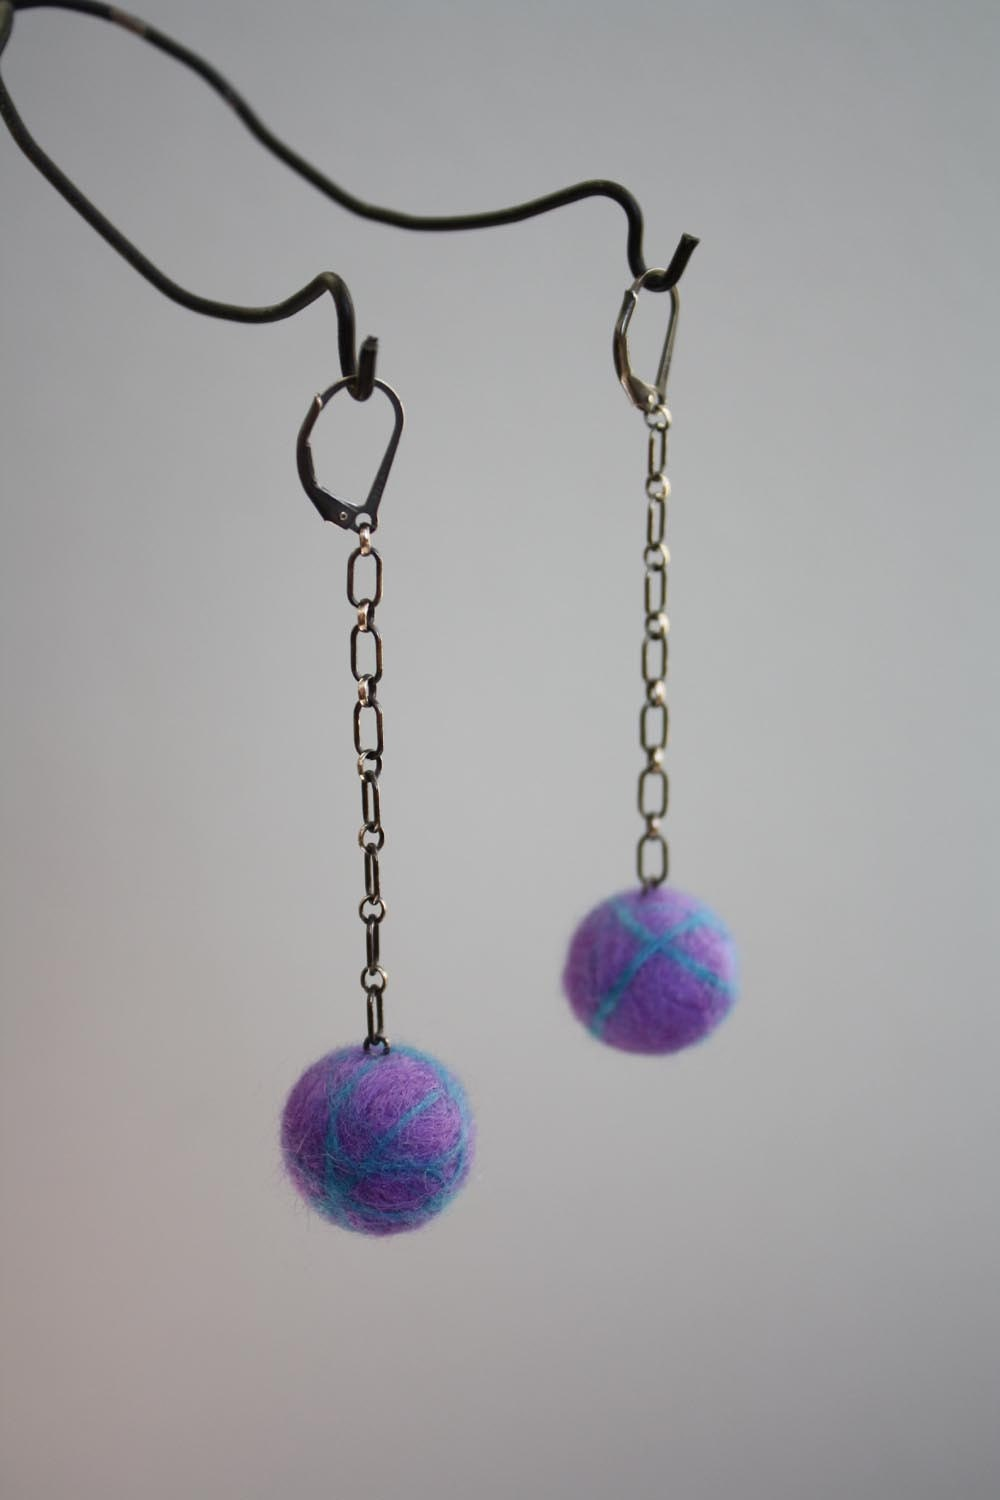 SALE - Felted Ball Earrings - Purple/Turquoise on Long Chain